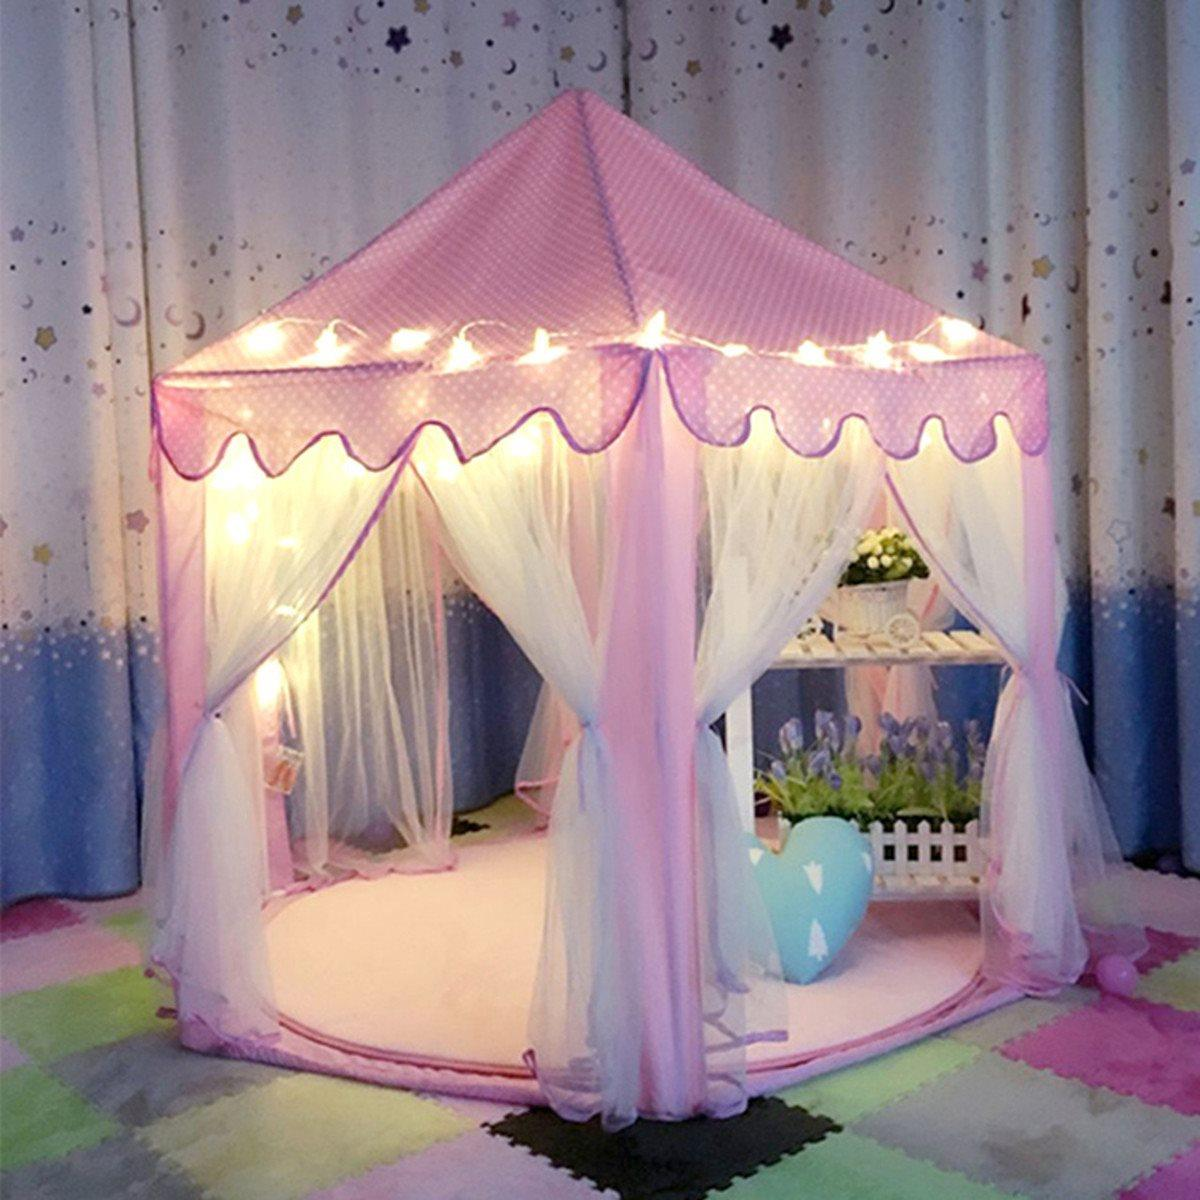 Lovely Girls Pink Princess Castle Cute Playhouse Children Kids Play Tent Outdoor Toys Tent For Children Kids Child Tents Kids Play Tents And Tunnels From ... & Lovely Girls Pink Princess Castle Cute Playhouse Children Kids ...